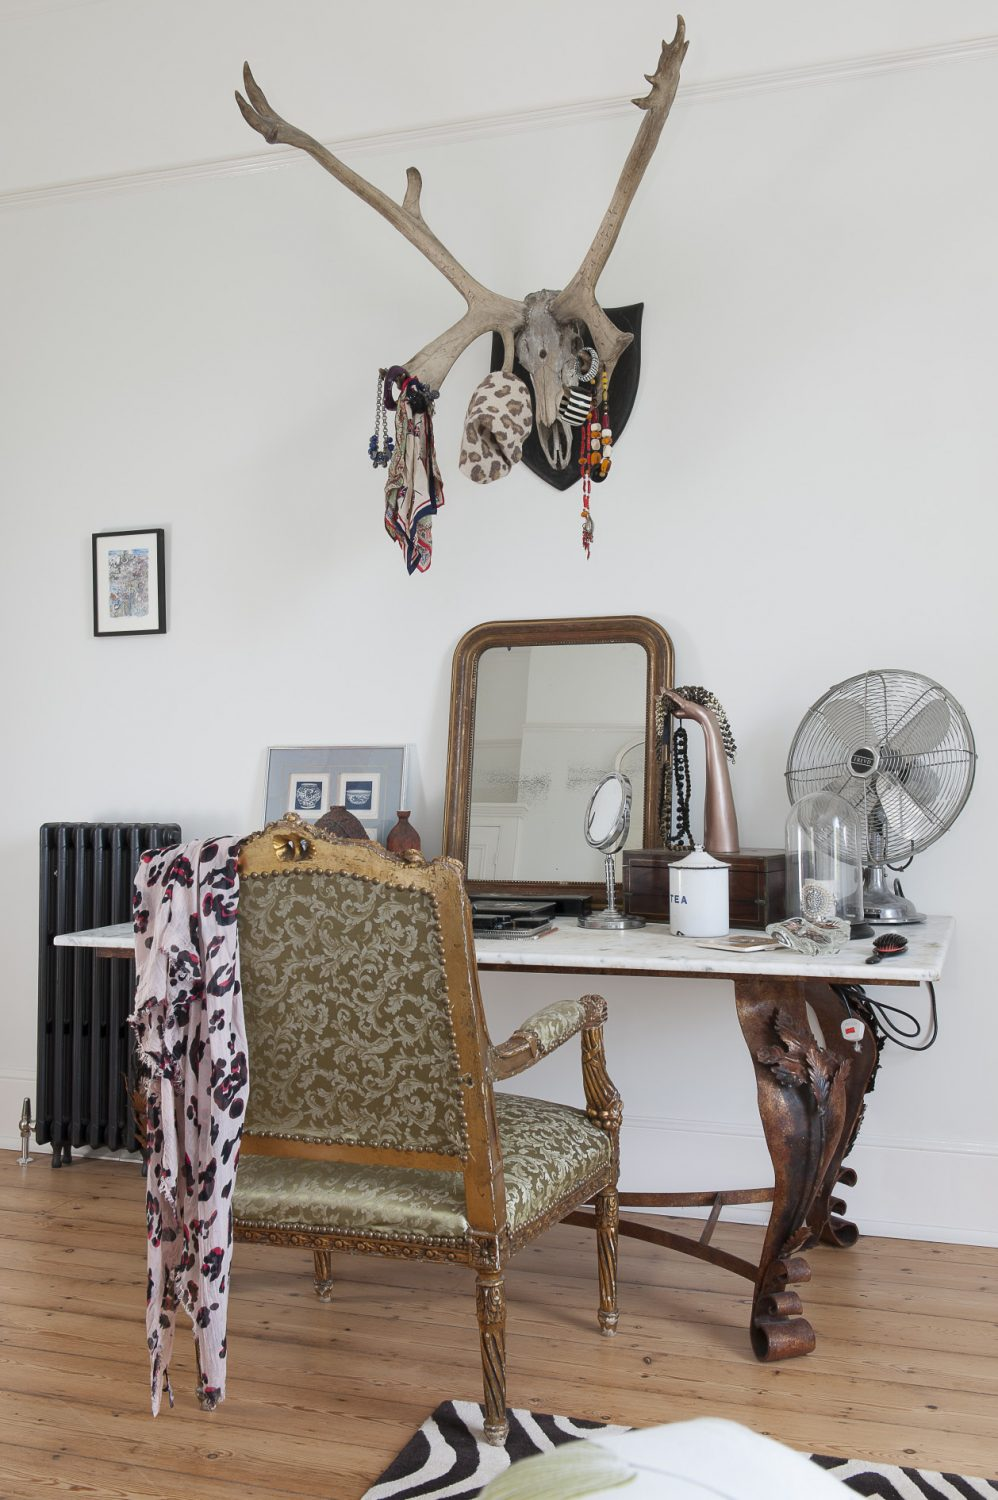 Mounted on the wall above her dressing table, antlers provide the perfect place for Louise to hang scarves and jewellery